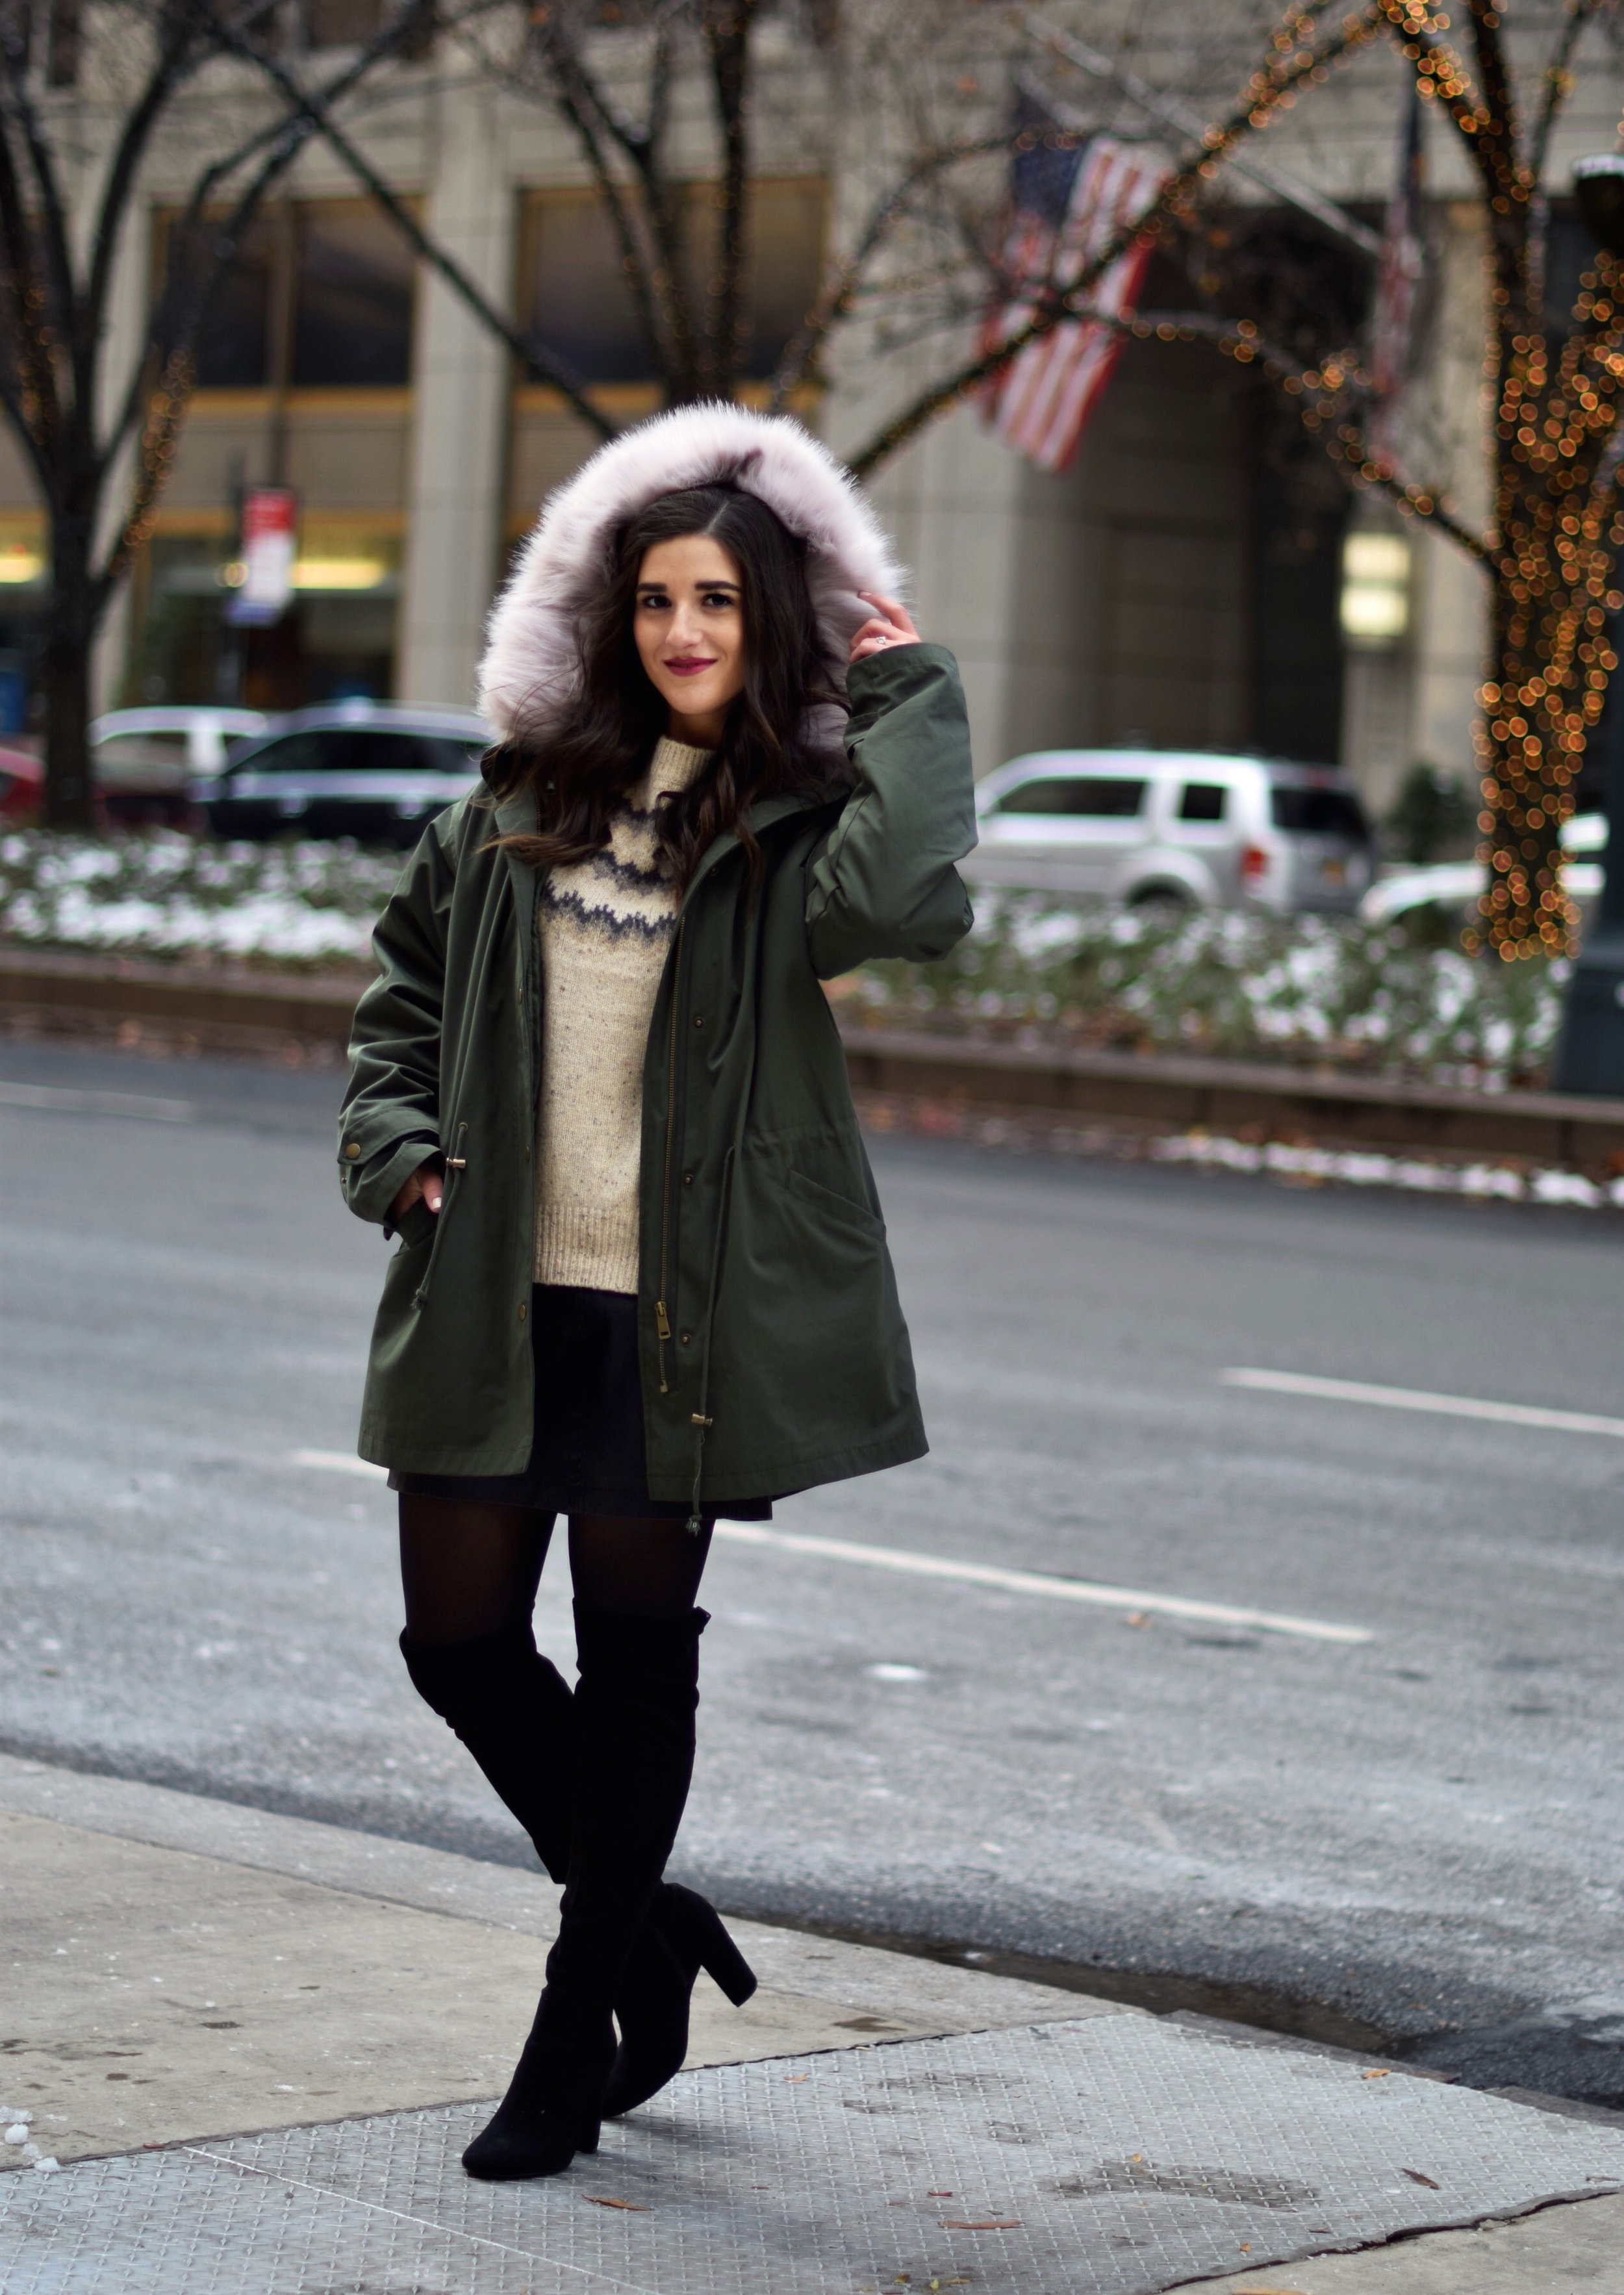 The Perfect Parka 10 Coats To Gift This Season Esther Santer Fashion Blog NYC Street Style Blogger Outfit OOTD Trendy Urban Outfitters Jacket Coat Girl Women Fur Hood Winter Black OTK Boots Cashmere Sweater Shoes Cold Weather Shopping Holiday Presents.jpg